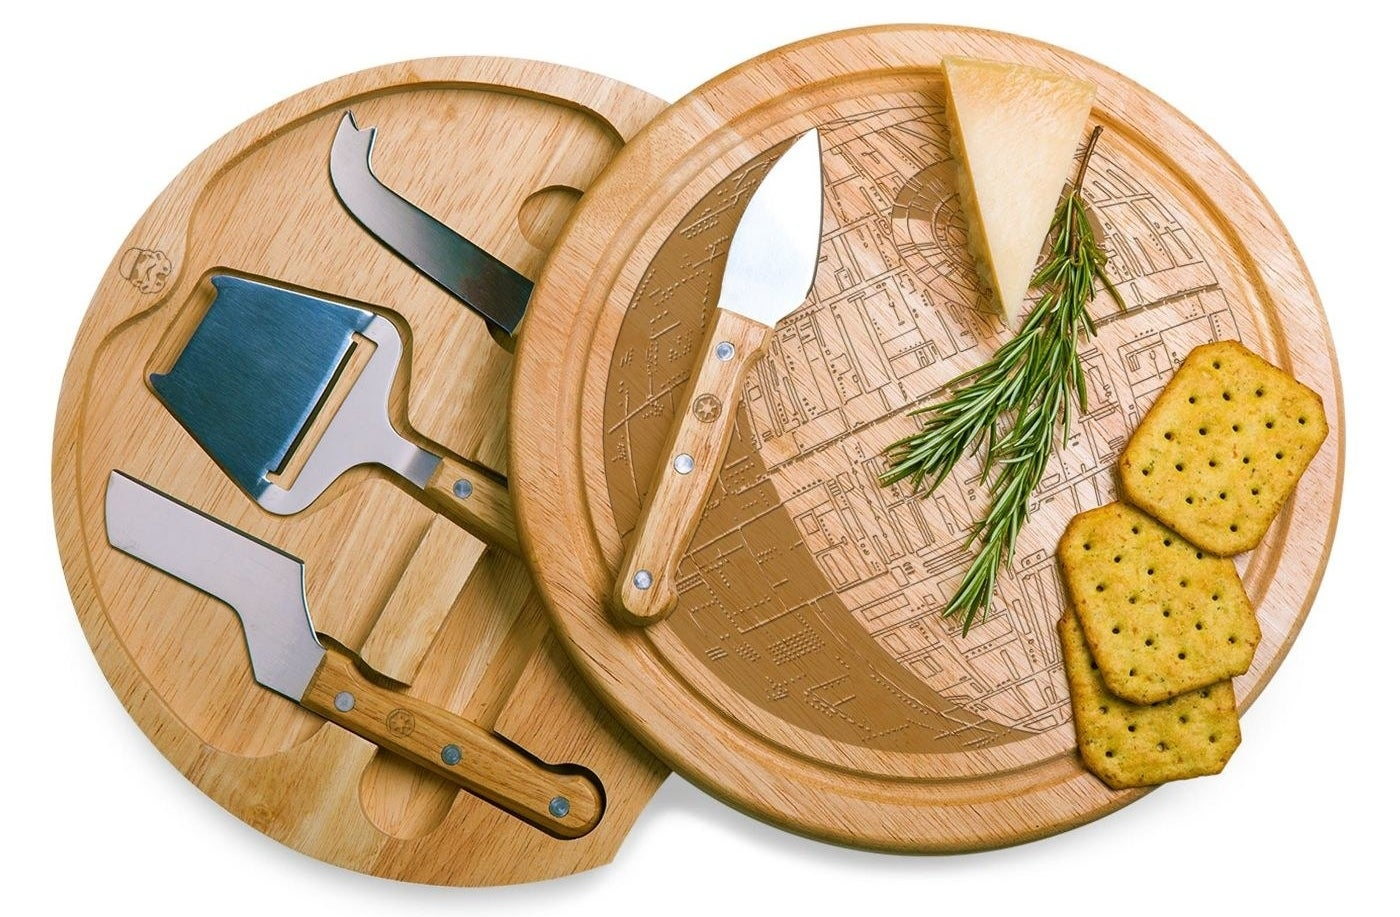 round wood cheese board with top swiveled forward, showing the inside with cheese tools that fit into holes perfectly, and the etching of a Death Star on top